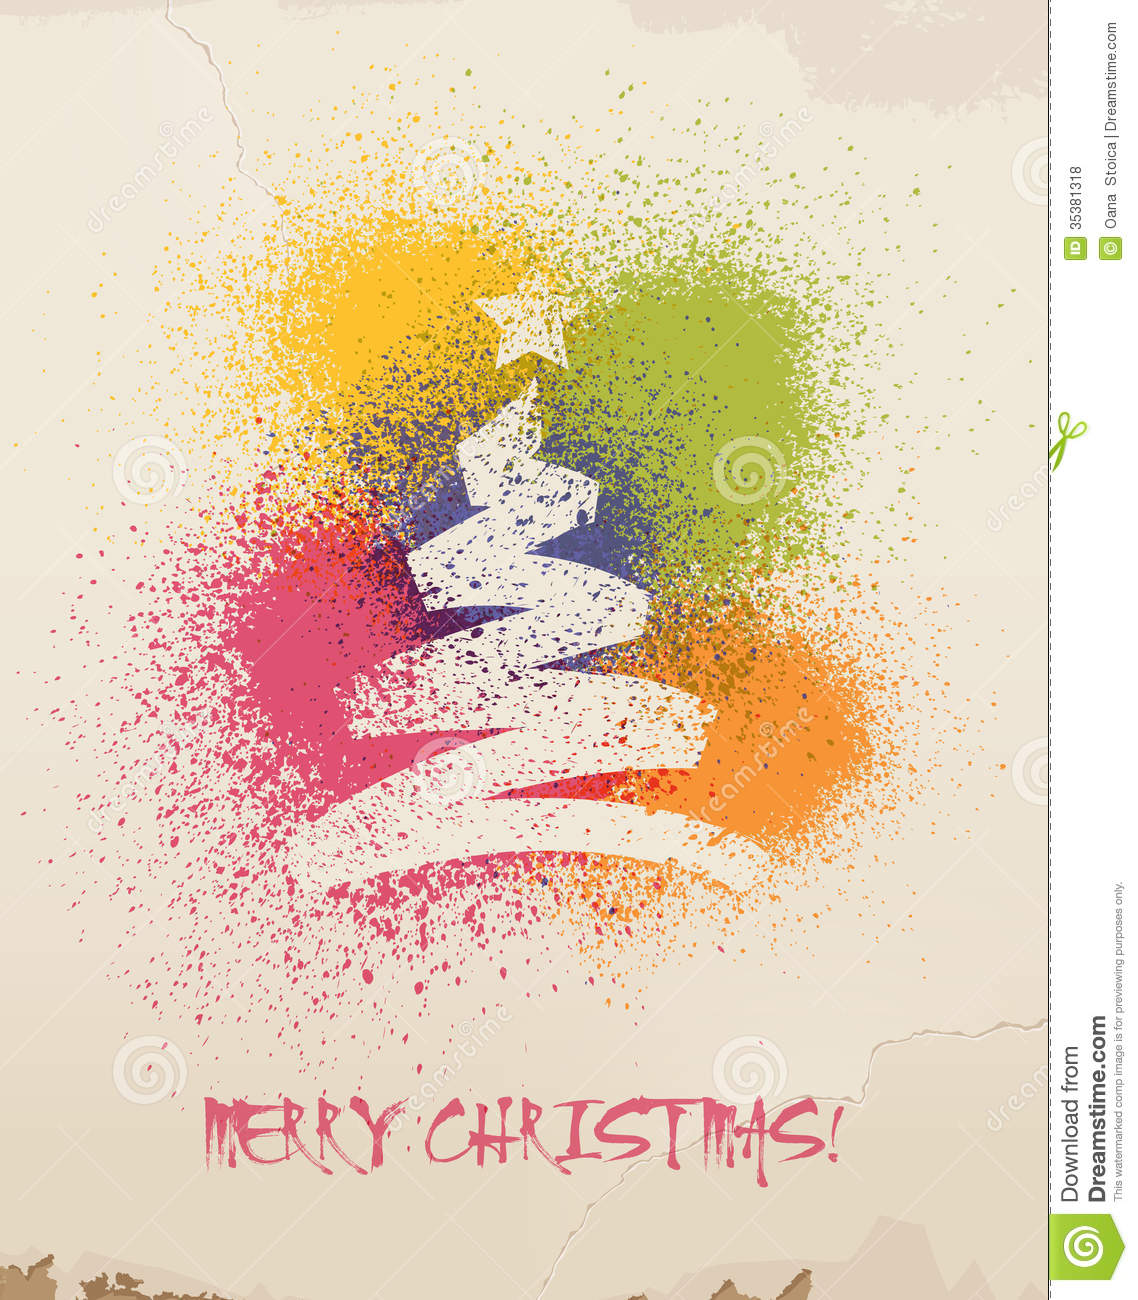 Christmas Greetings Spray Painted On Wall Stock Vector